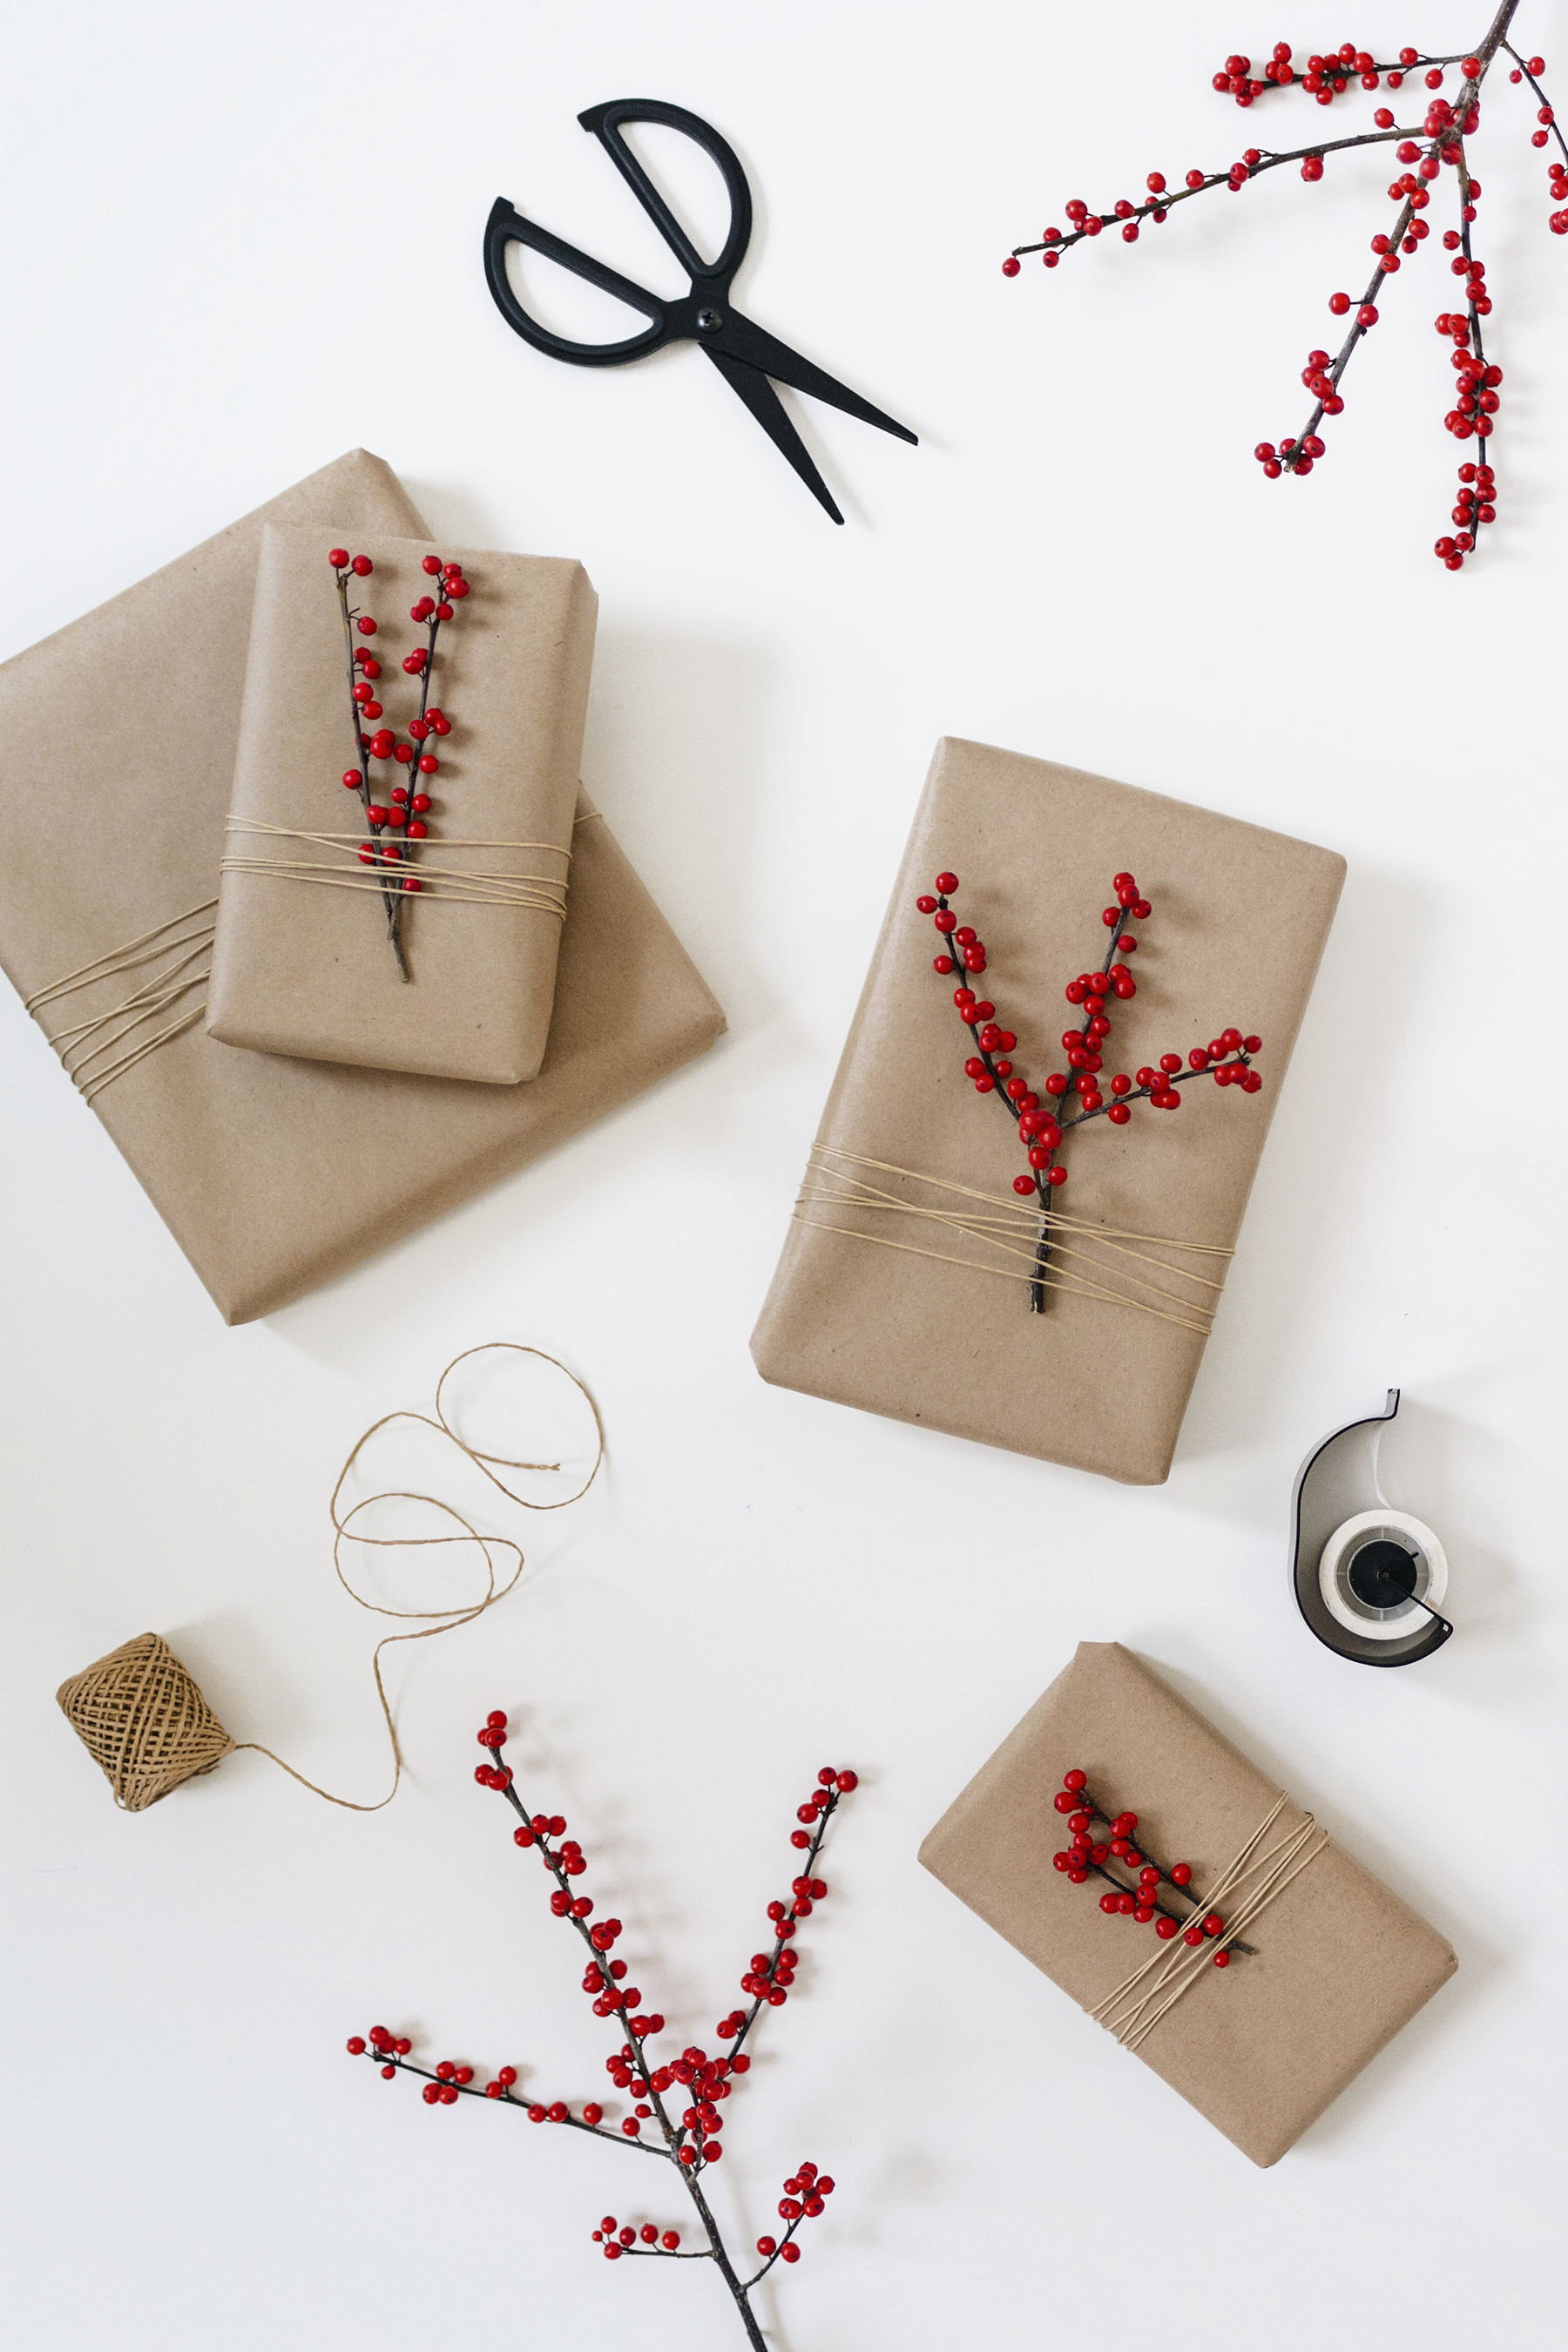 Christmas wrapping with brown postal paper and red Winterberry branches